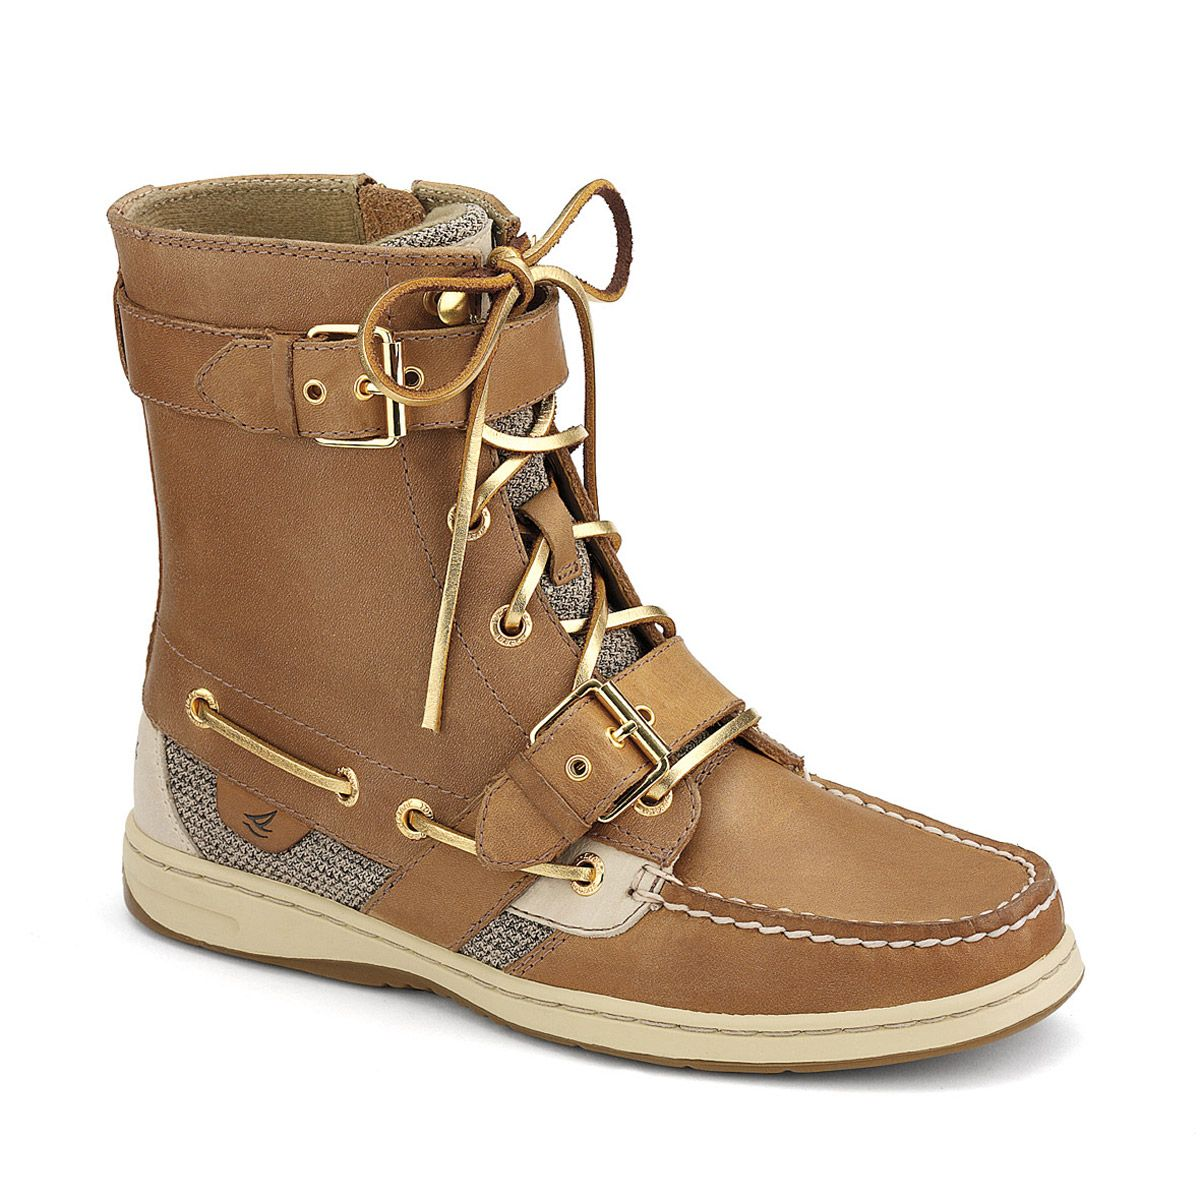 Boots, Boot shoes women, Boat shoes